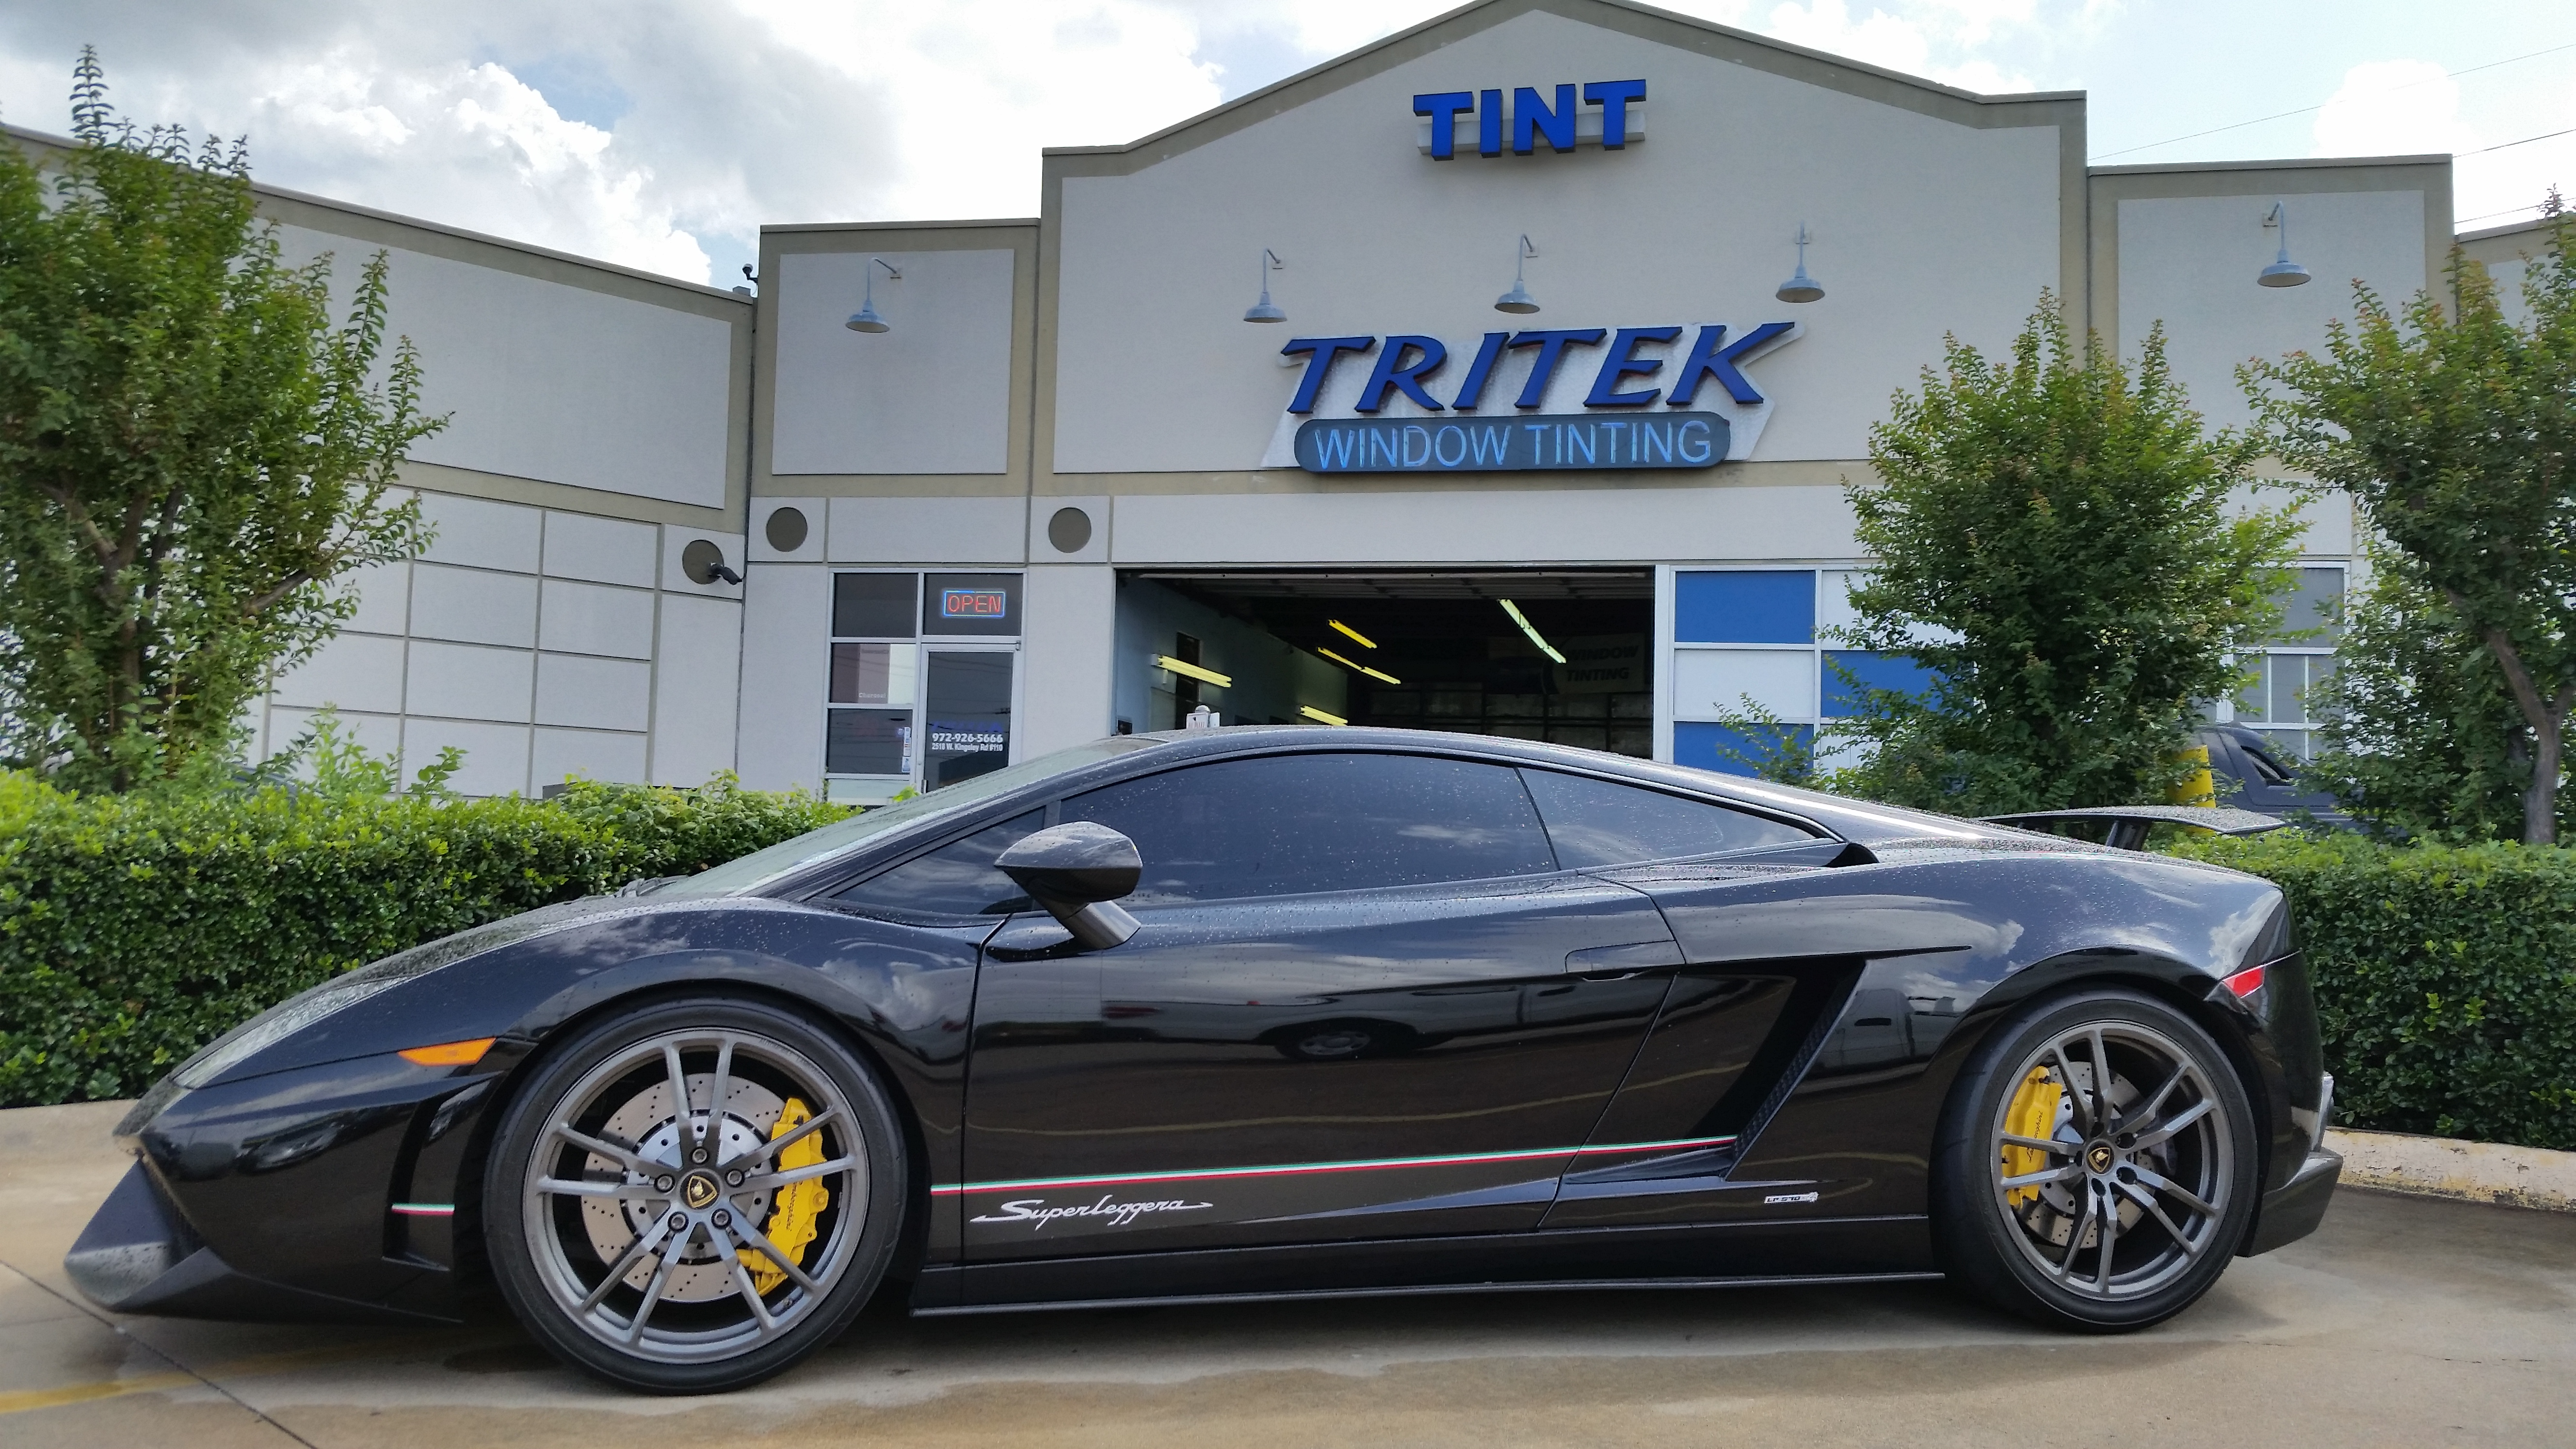 World Class Tinting Products & Tritek Window Tinting Dallas #1 Source for Premium Tint